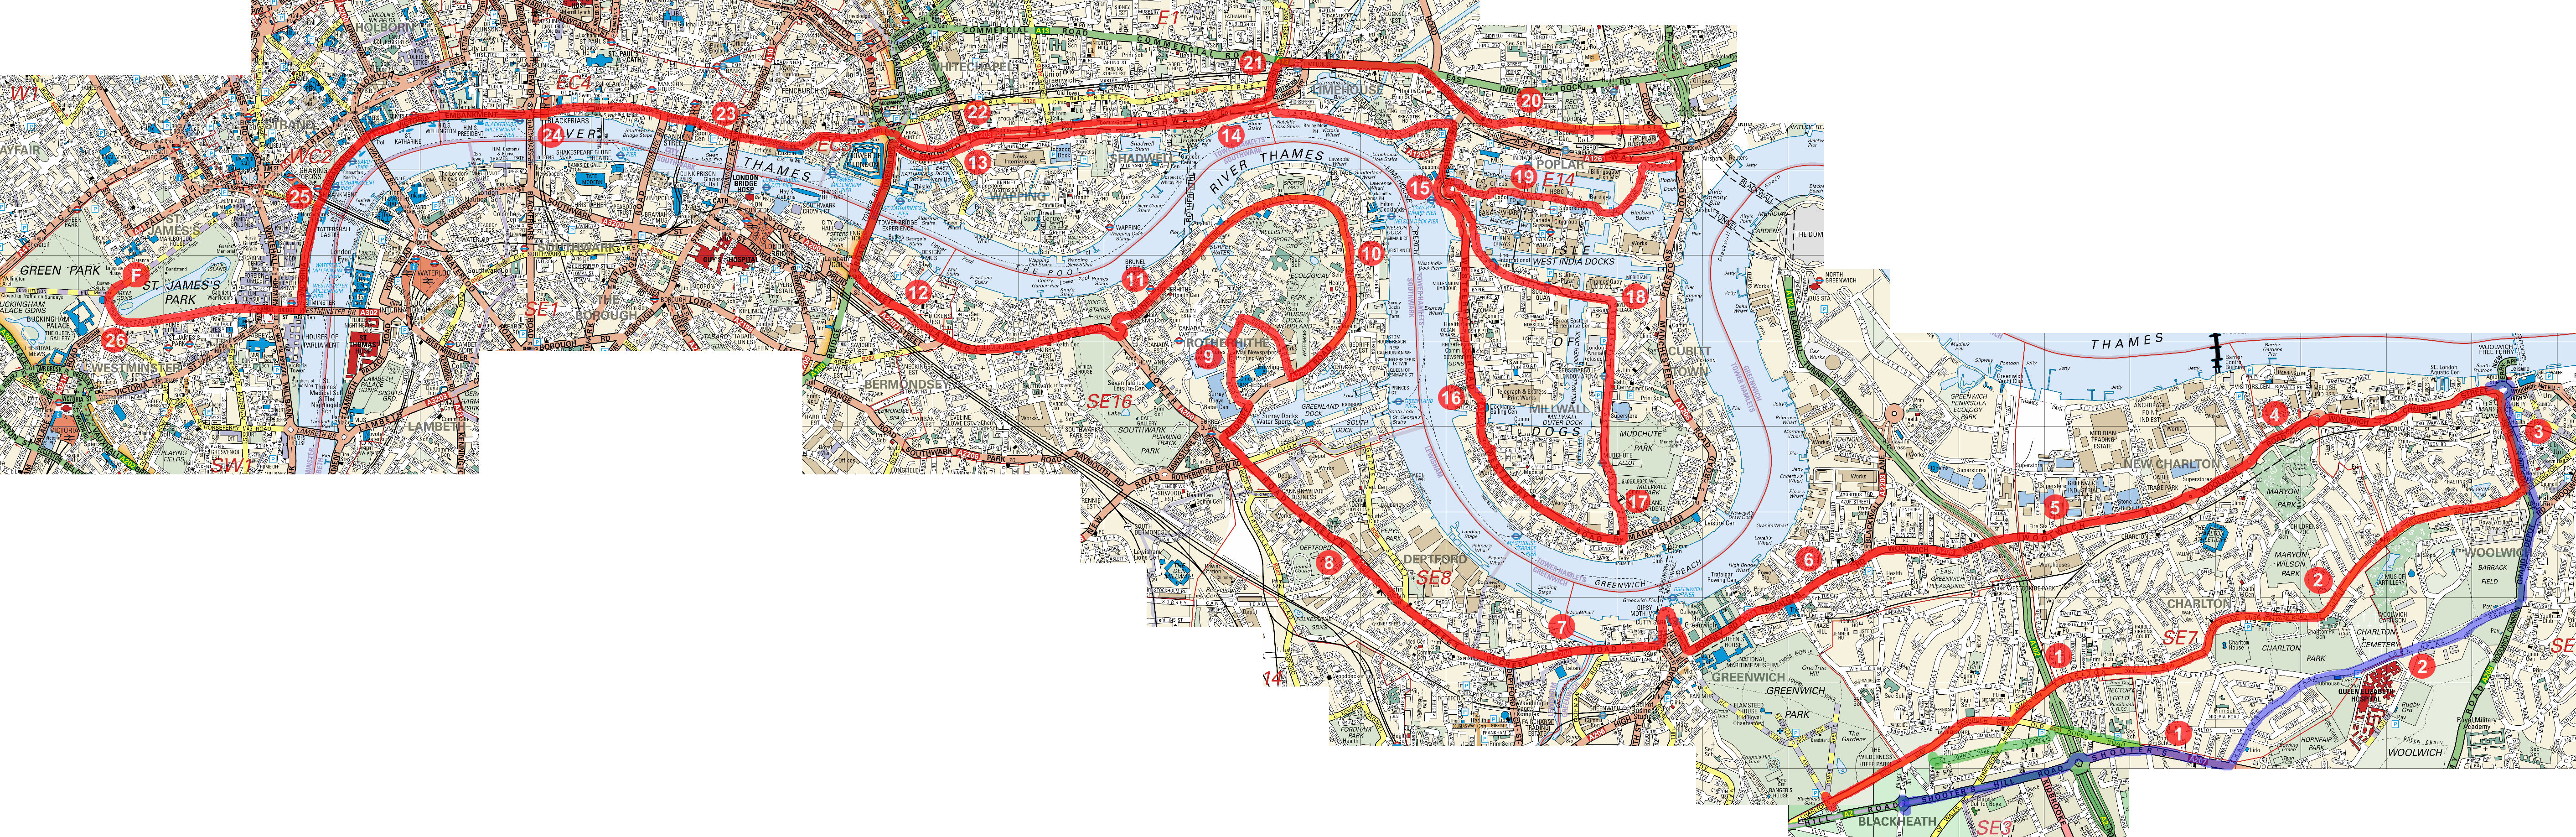 serpentine running club - running - course map